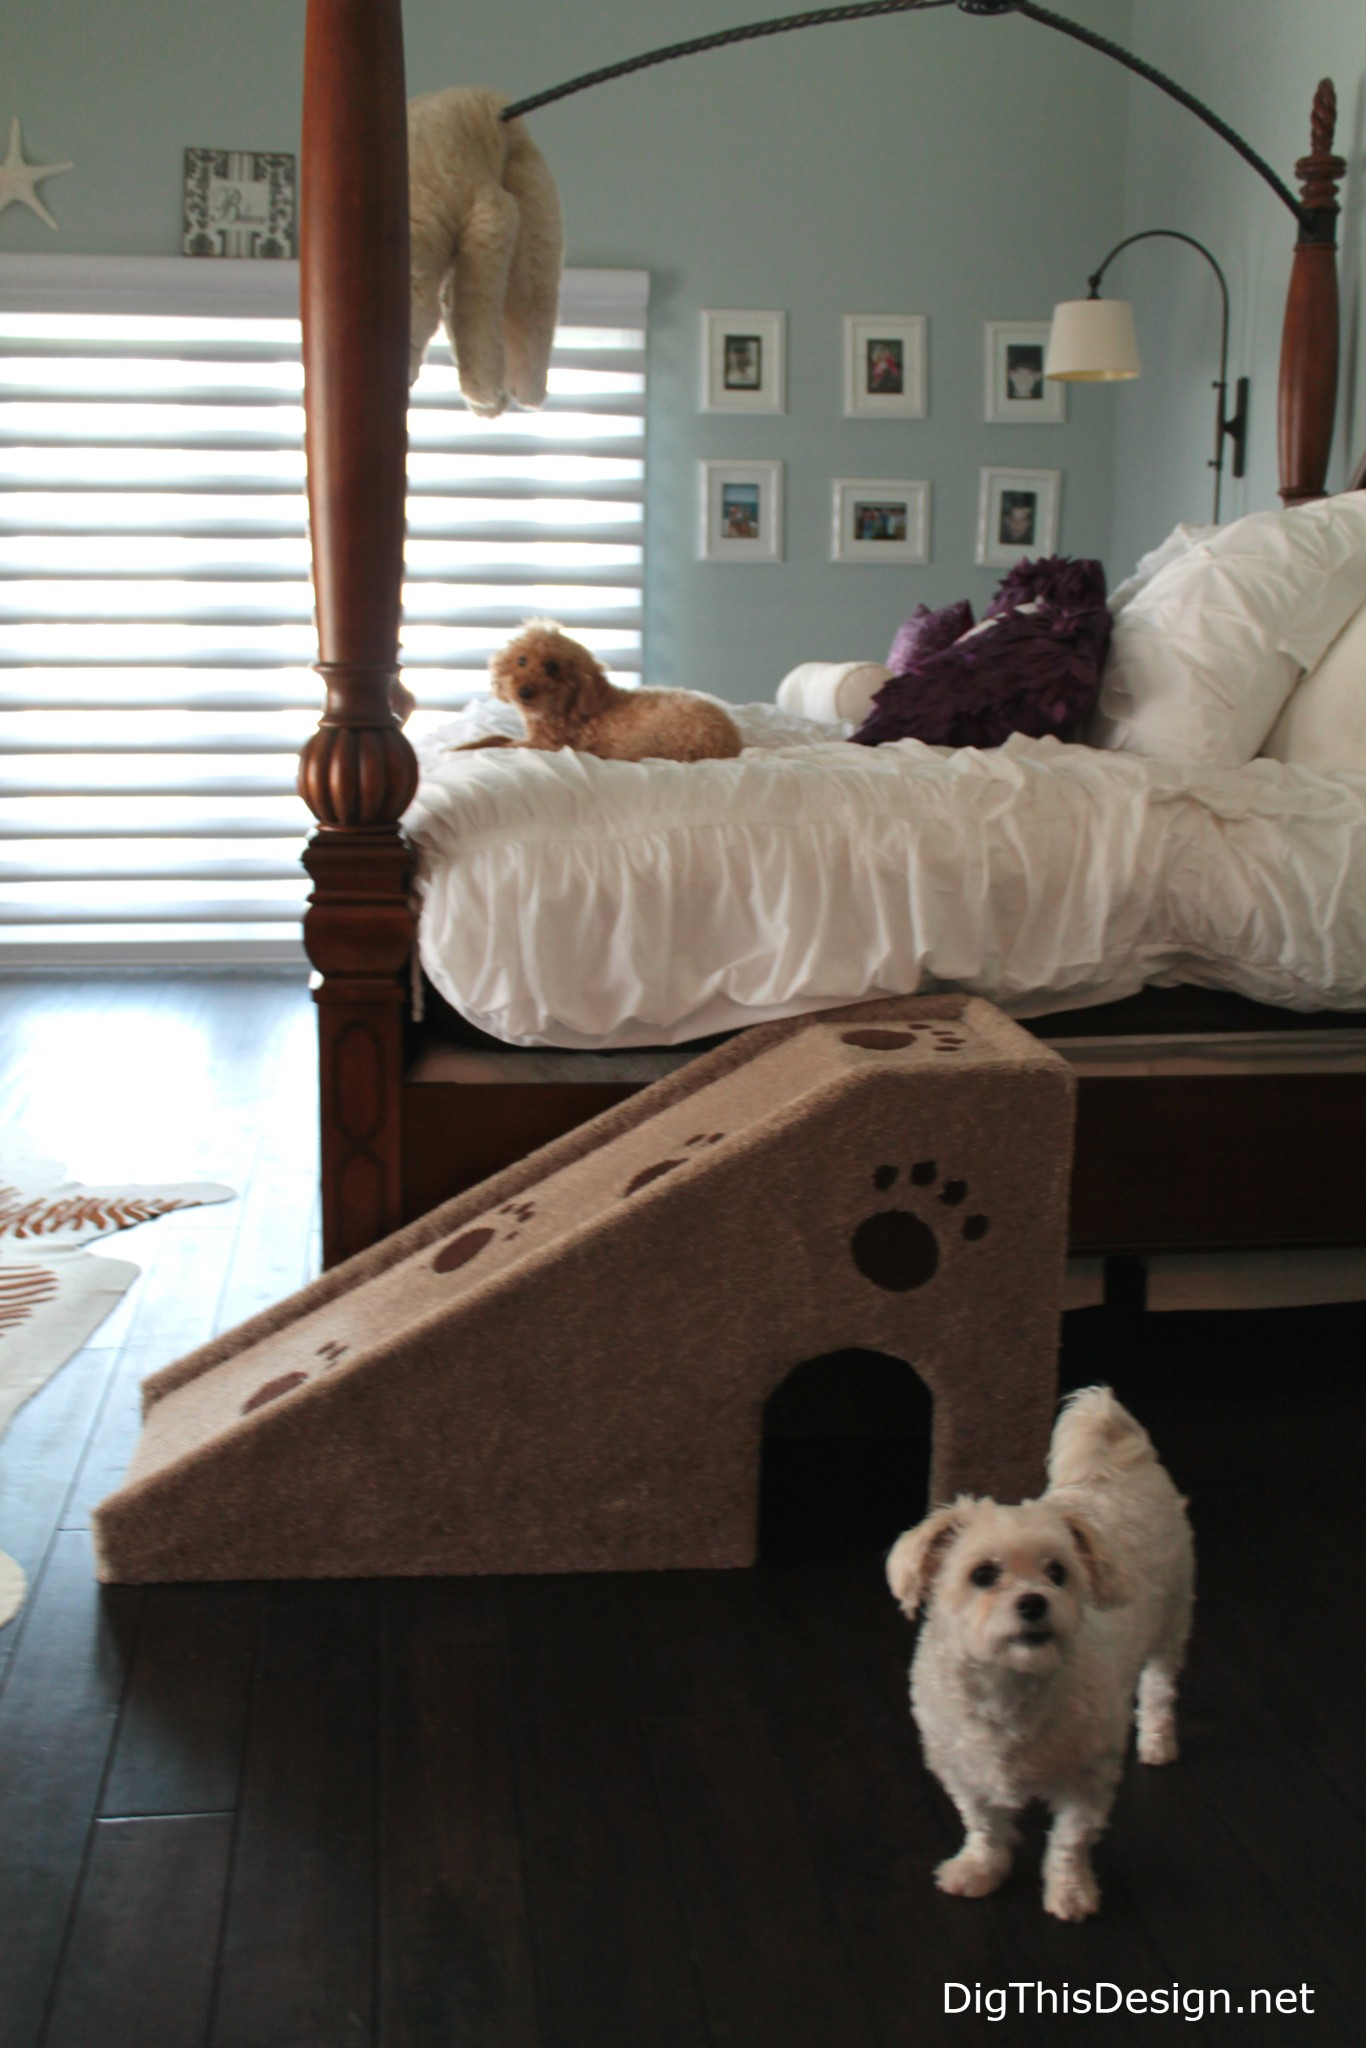 Room Décor That Intergrates Your Dogs Comforts; 10 Dog Bed Design Ideas